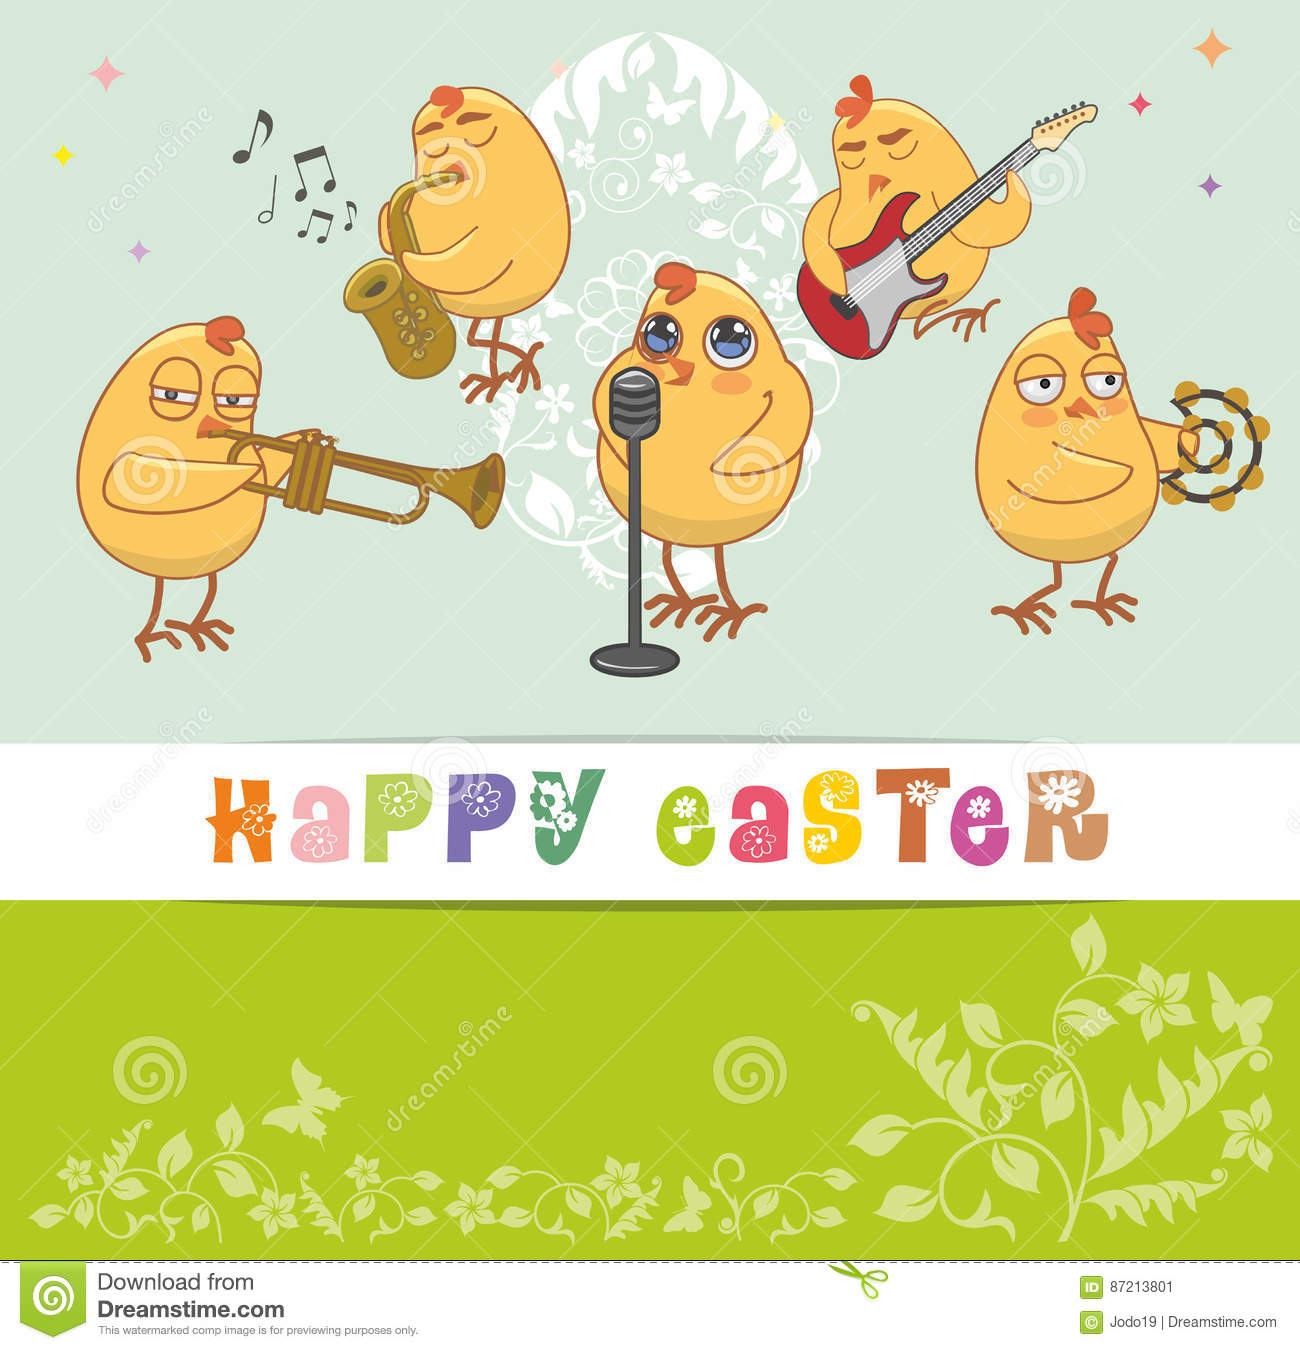 Chickens musicians greet with a happy easter stock vector chickens musicians greet with a happy easter m4hsunfo